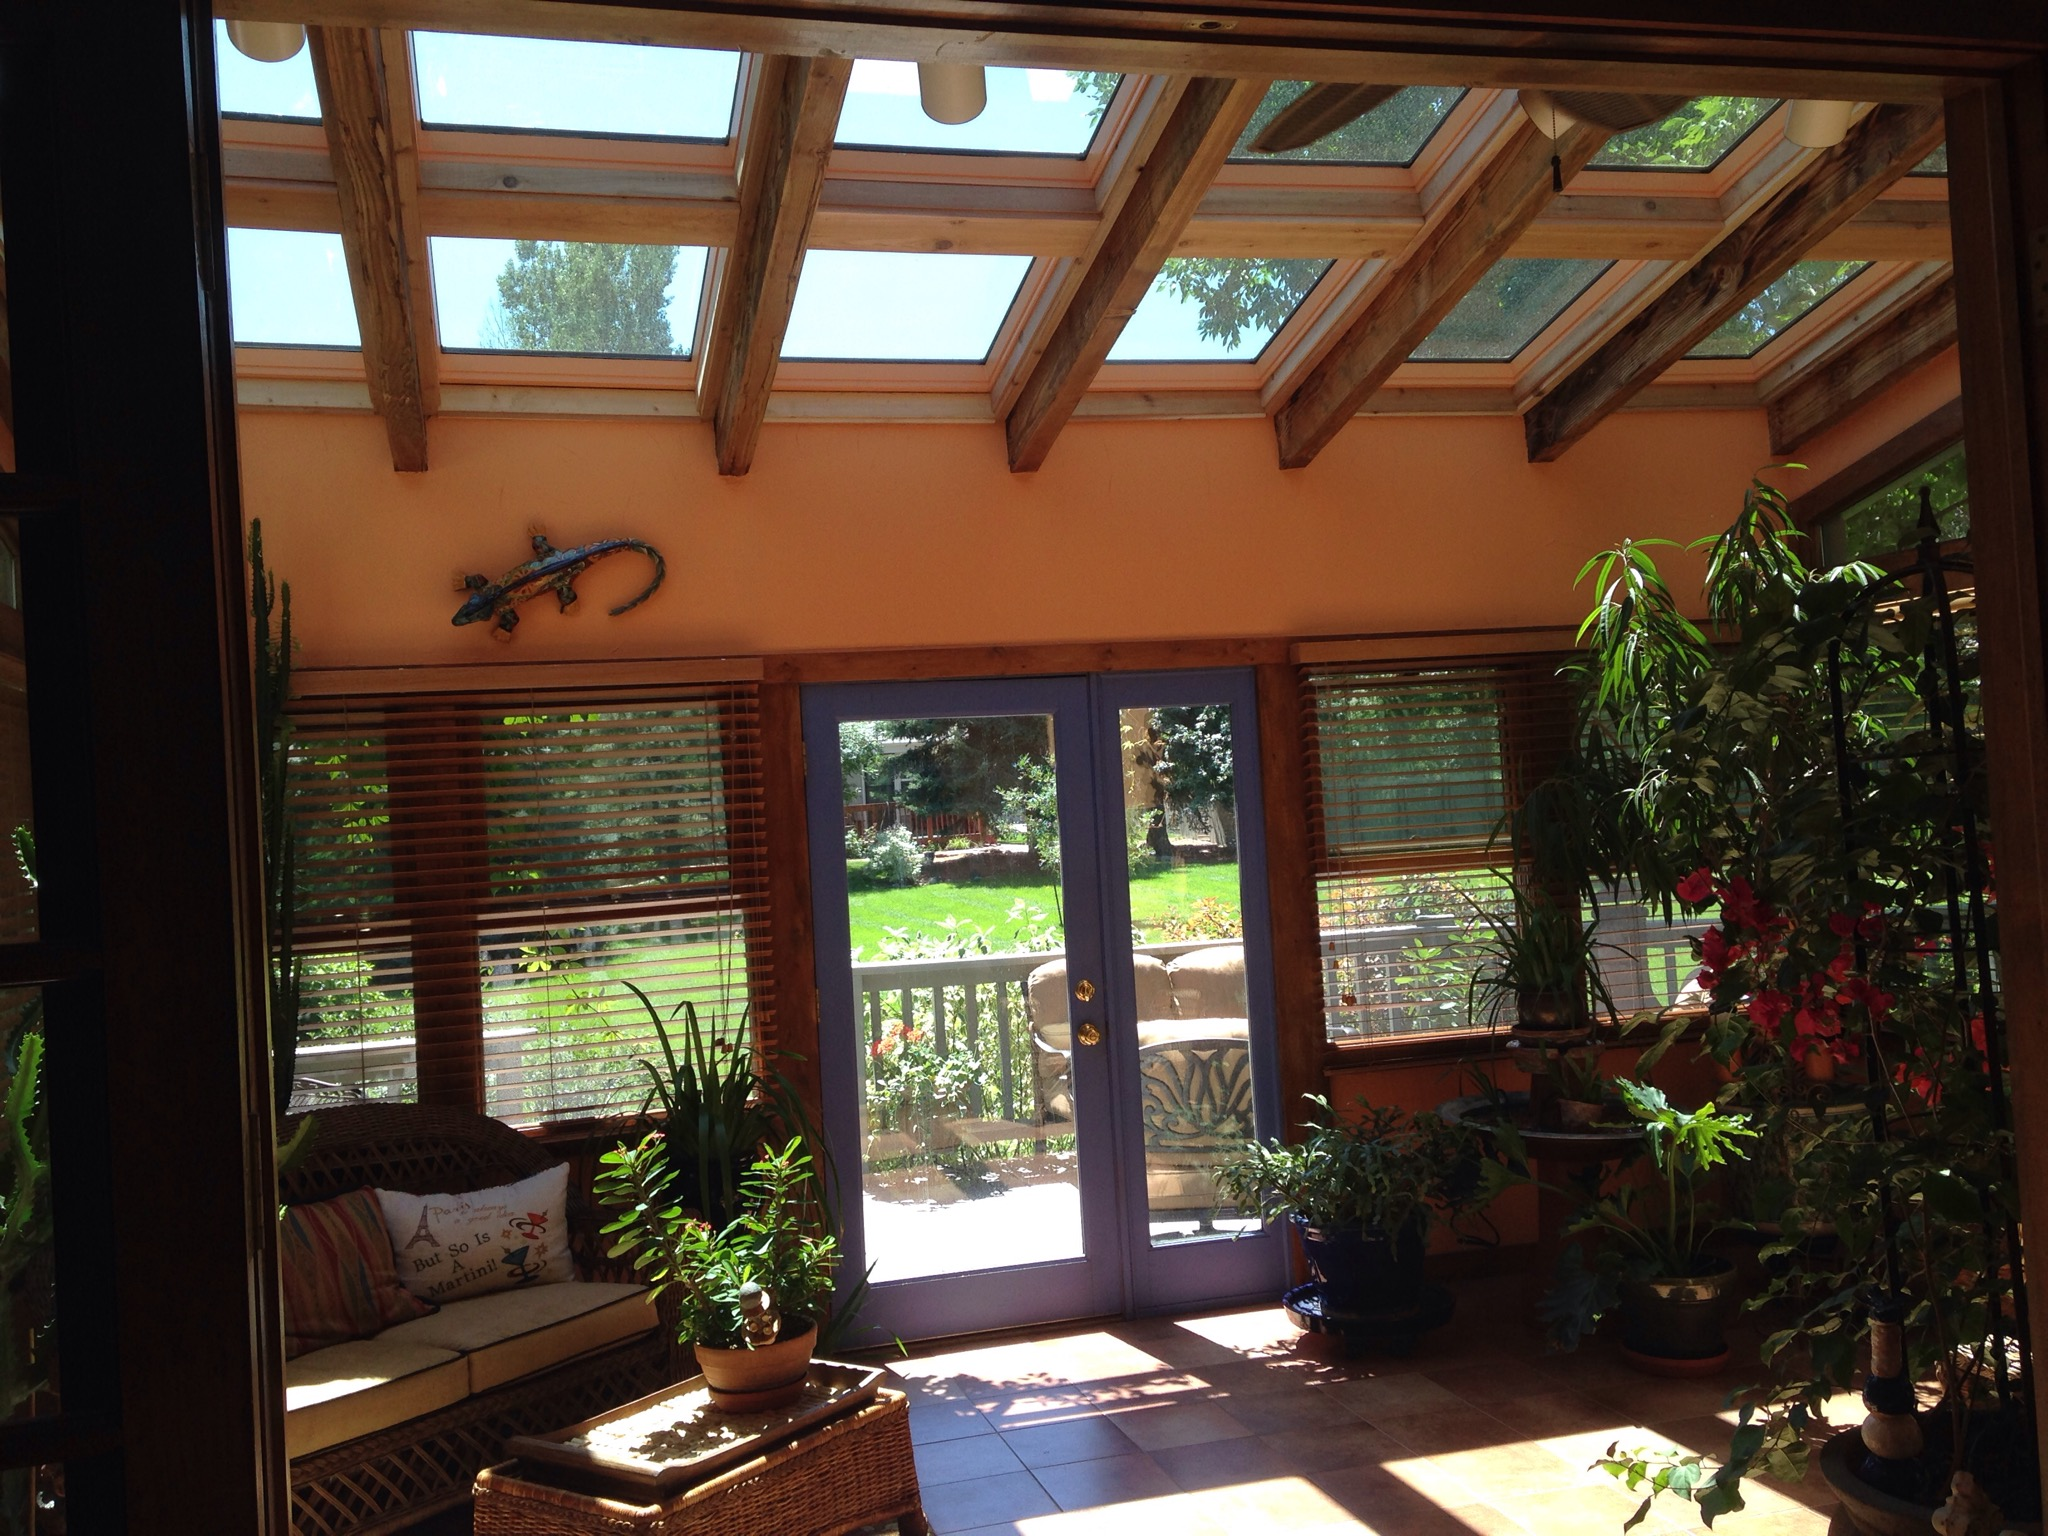 Full replacement of multiple skylights in a sunroom